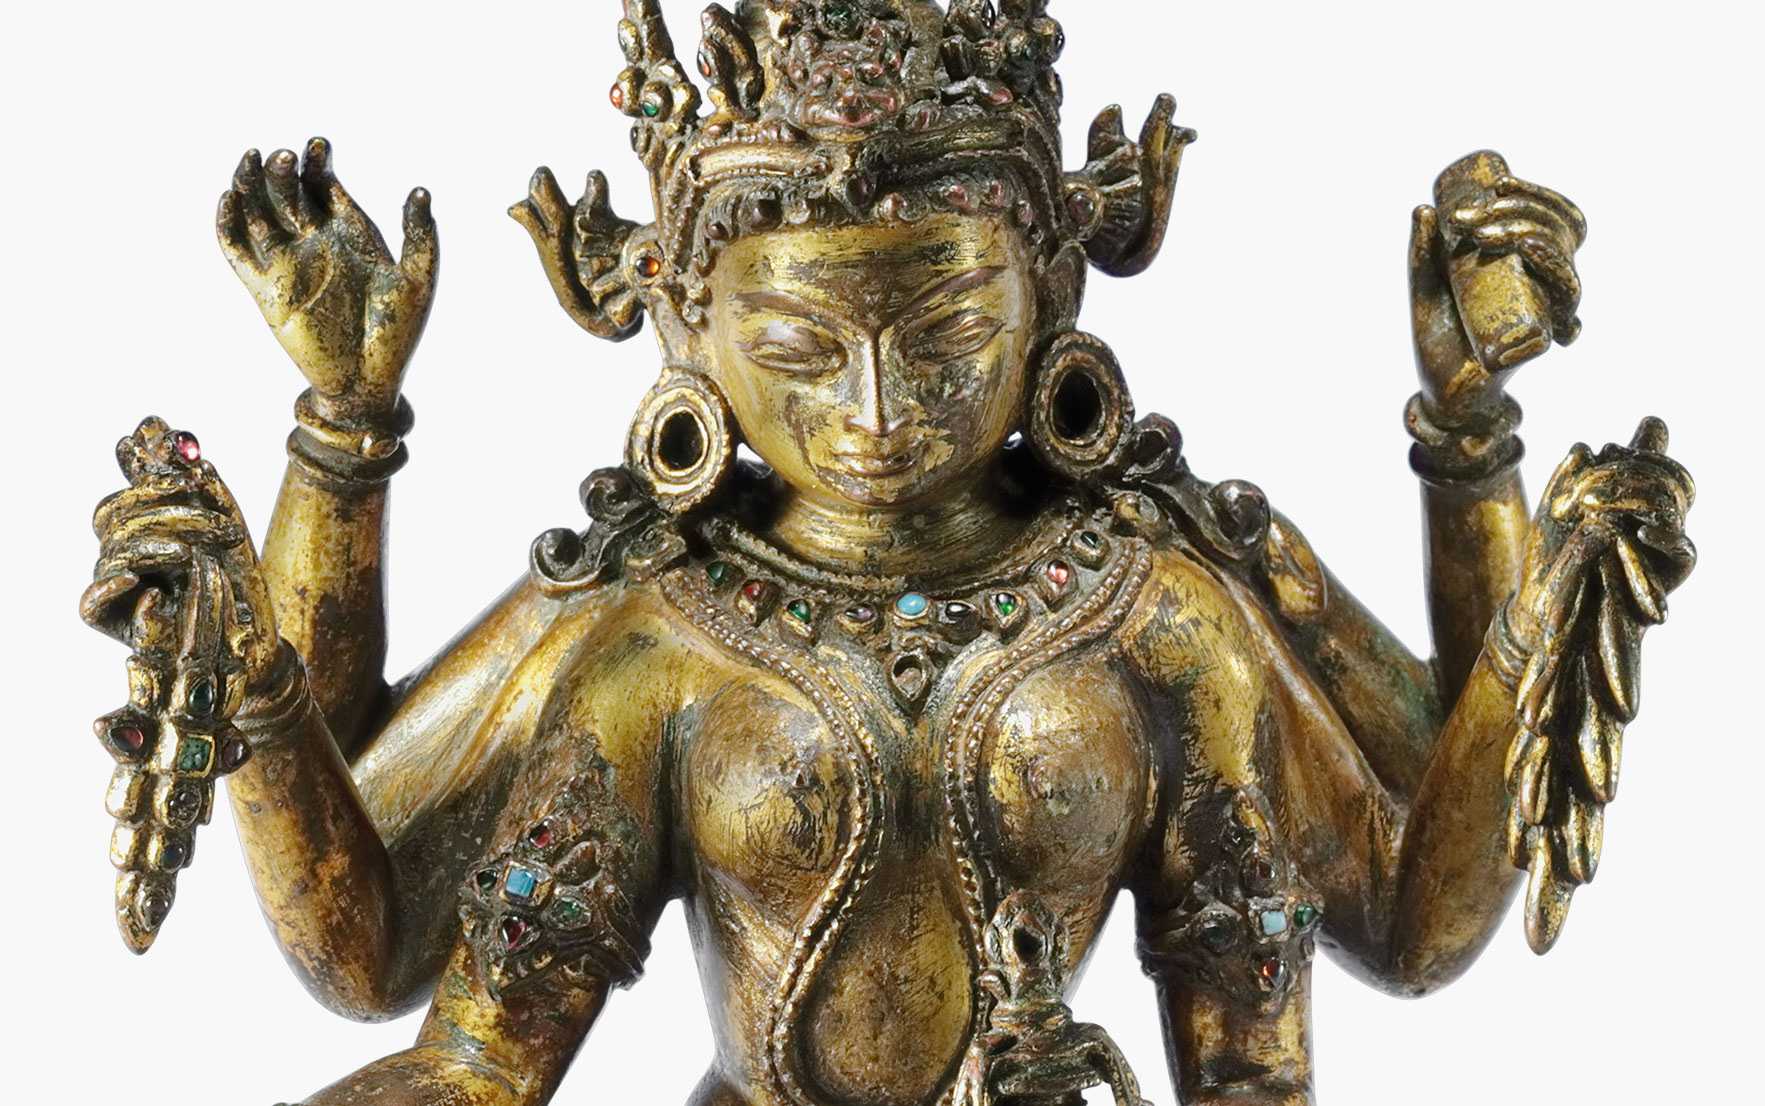 Collecting Guide 5 things to know about Himalayan bronzes